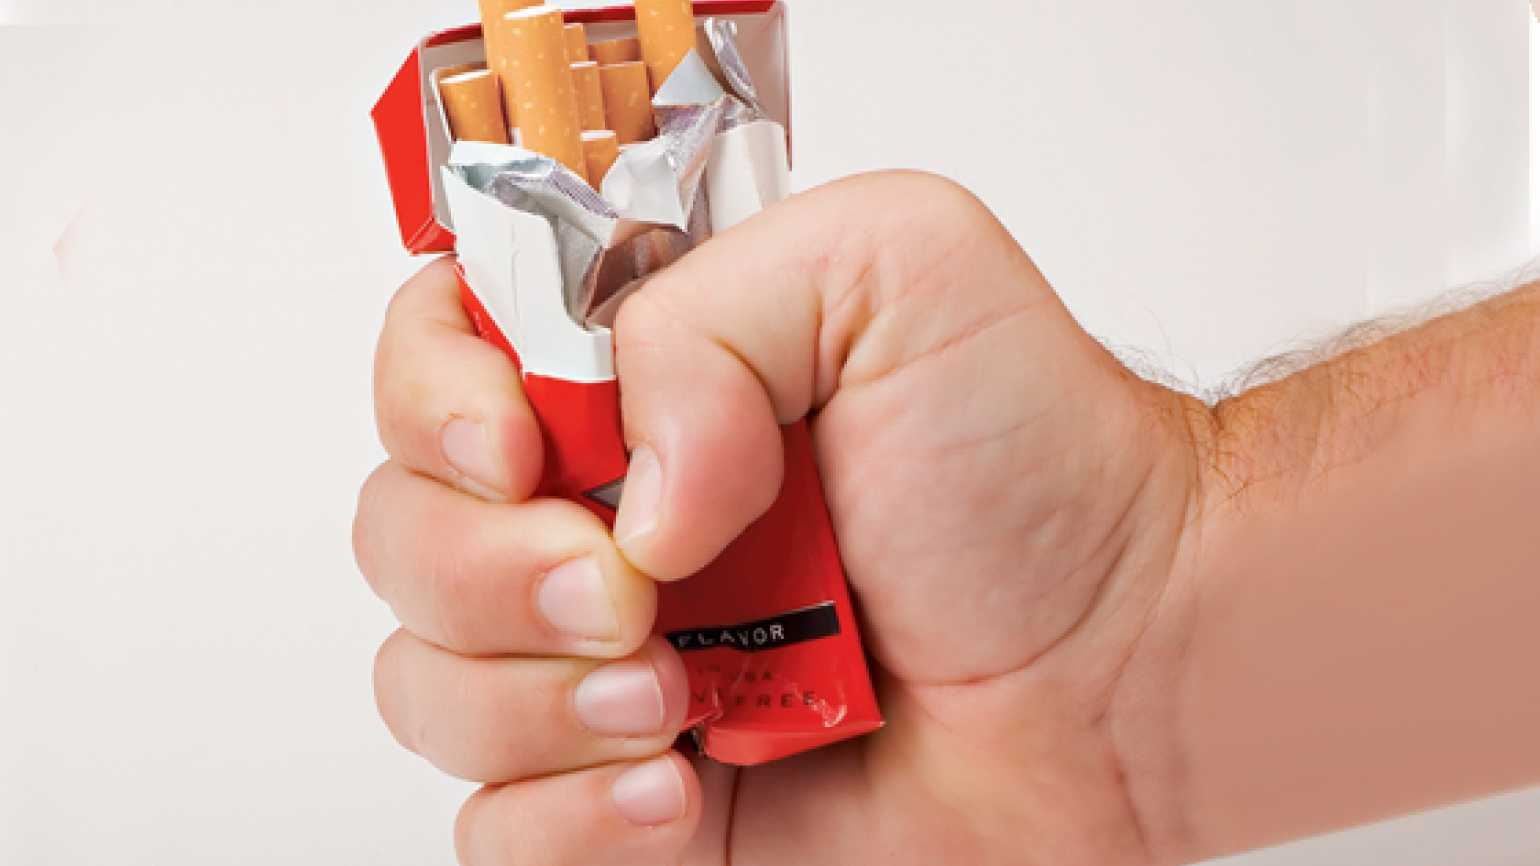 A man's hand crumples a pack of cigarettes.